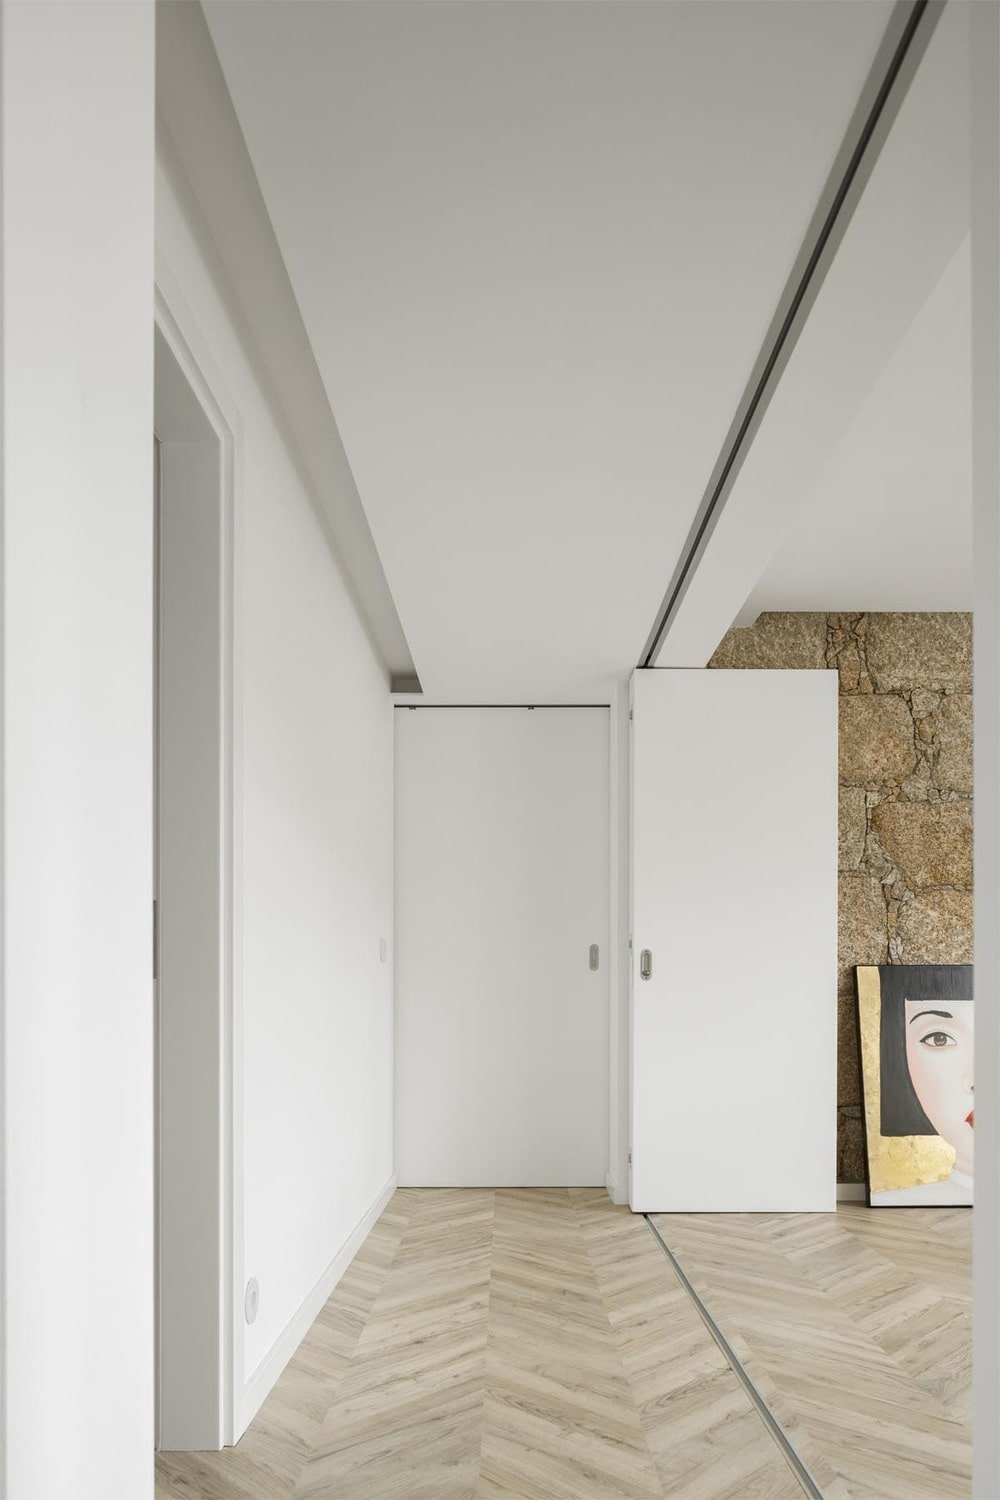 This is another look at the folding white doors and how it blends with the white ceiling.